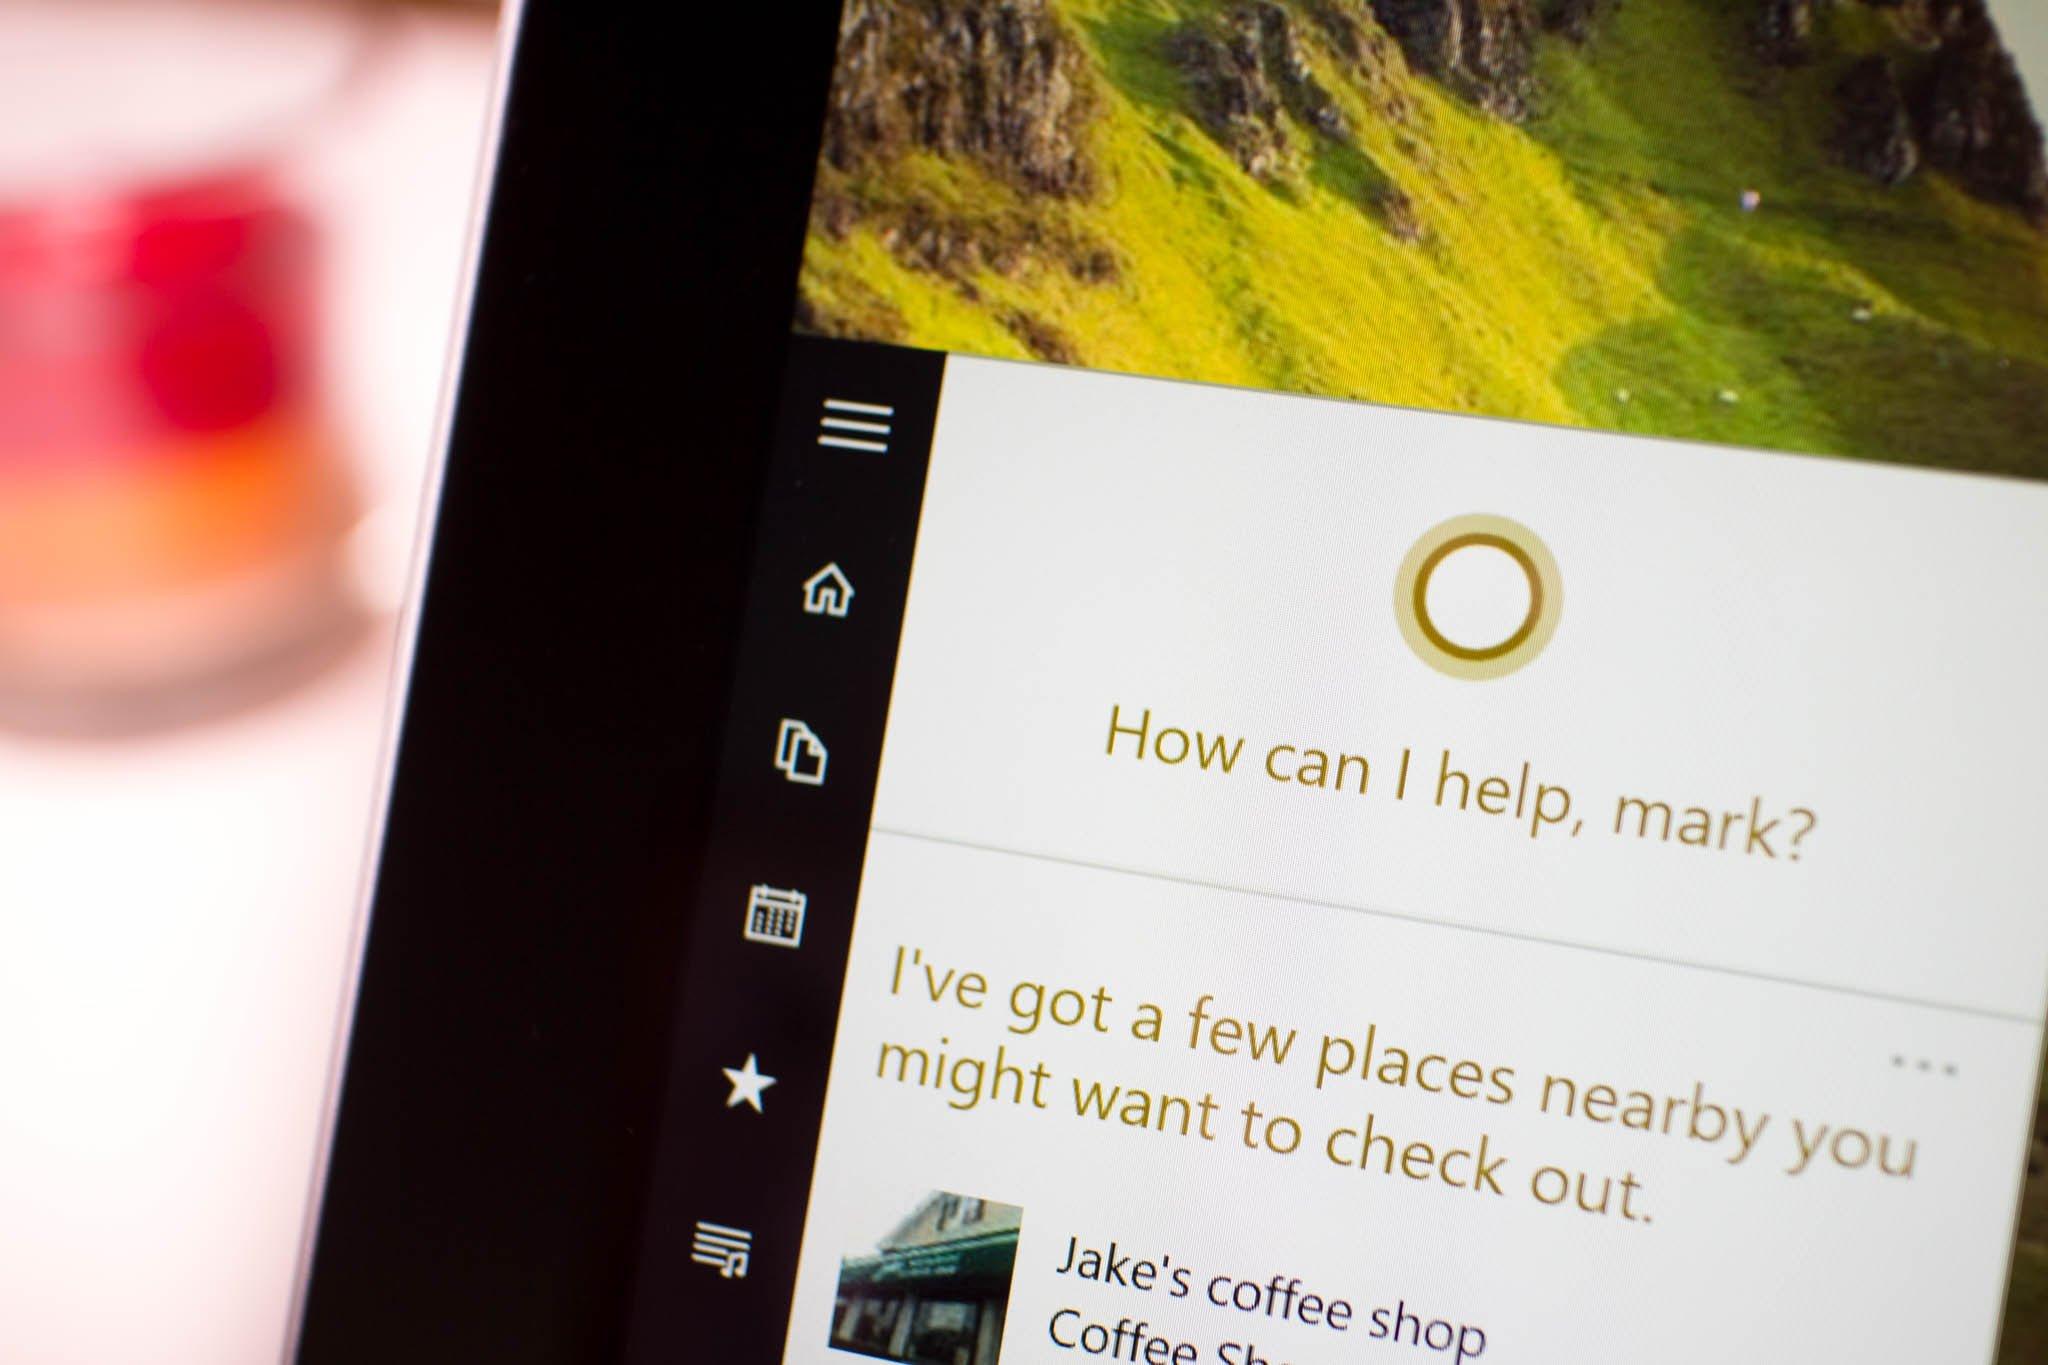 Microsoft shuts down Cortana search hacks with Microsoft Edge restriction